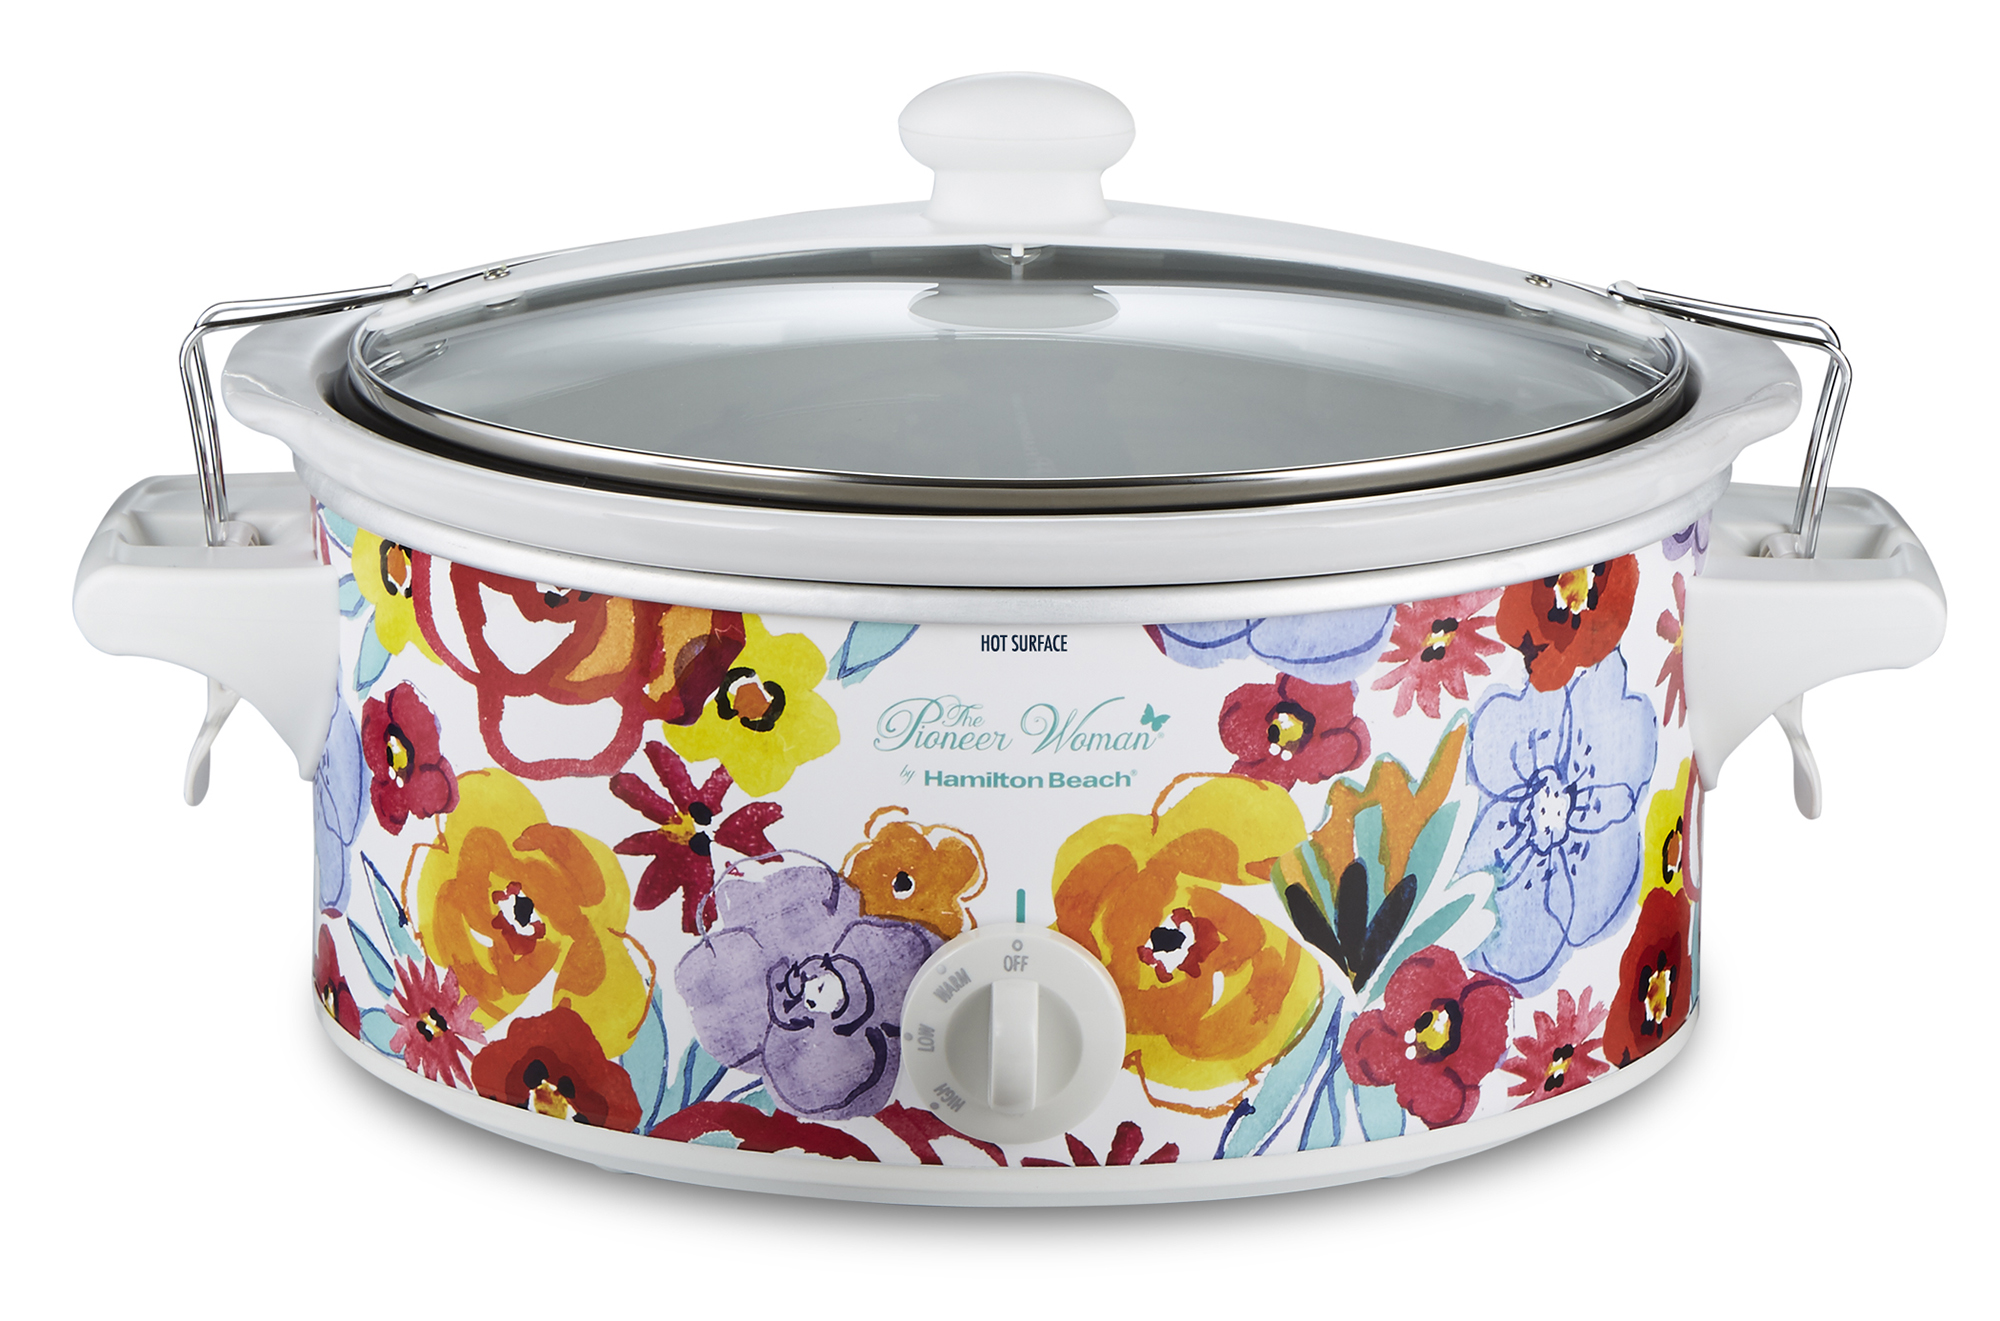 The Pioneer Woman Flea Market Floral 6-Quart Portable Slow Cooker